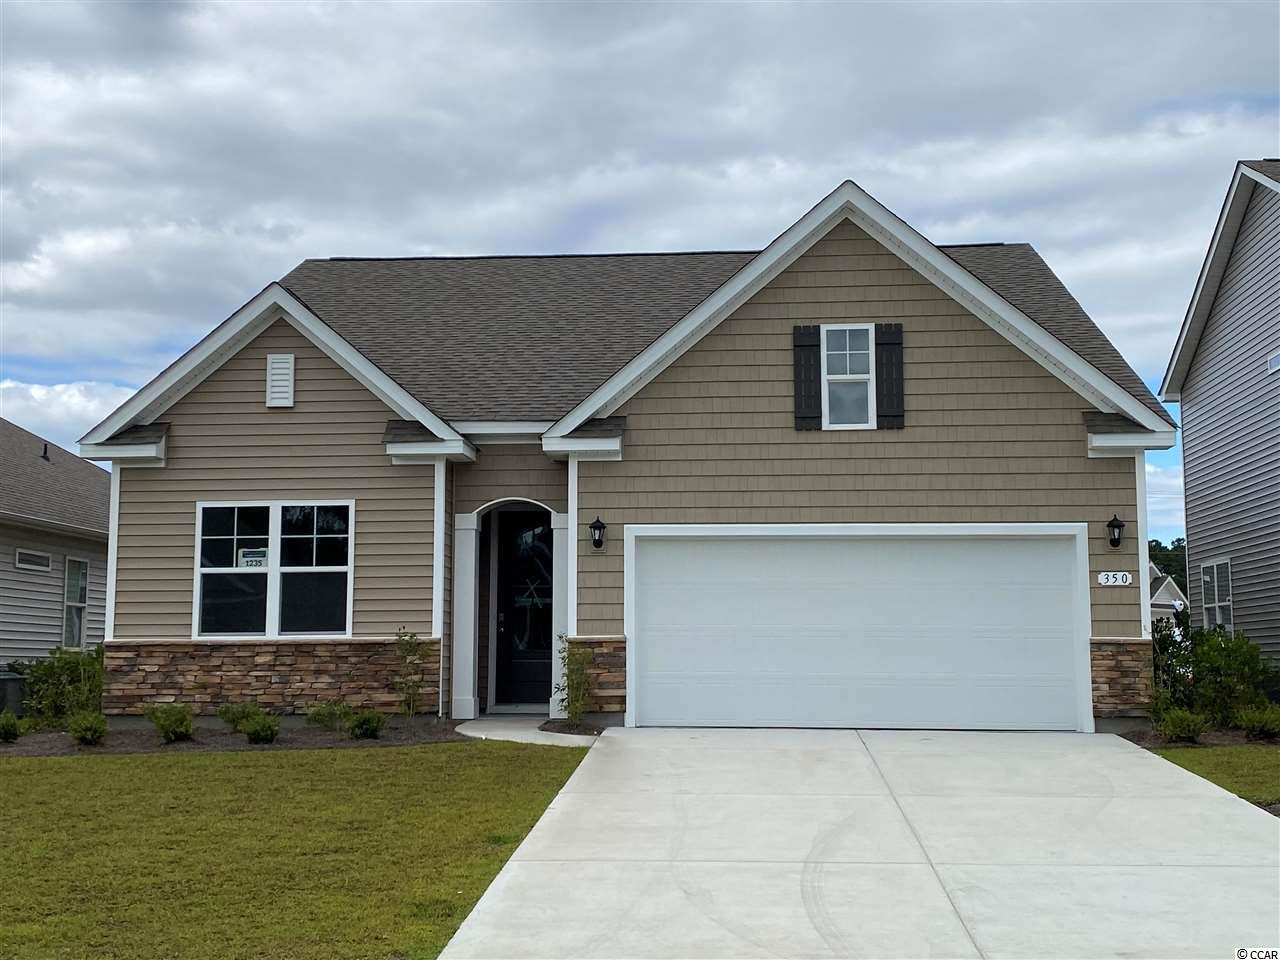 "The very popular Acadia floor plan is now available in our new, natural gas community! This home features a beautiful exterior with stacked stone accent and arched entryway. Inside you will find a very open layout with 9' ceilings and an extended living space. The kitchen boasts a large pantry and nice upgrades, including granite countertops, 36"" painted maple cabinets, and stainless steel appliances with a 5 burner gas range. The split bedroom plan offers a private master suite with a large walk-in closet, and en suite bath with a double vanity, 5ft. shower, and linen closet. This home also has a covered porch off the living room which is great for morning coffee! Ask about our Home Is Connected smart home package that is included in all of our homes.Hidden Brooke is a beautiful community with an amenity that includes a pool with large deck area, clubhouse, and exercise room. Minutes away from Highway 31 which provides quick and easy access to all of the Grand Strand's offerings: dining, entertainment, shopping, and golf! Tranquil setting just a short drive to the beach. *Photos are of a similar Acadia floorplan. (Home and community information, including pricing, included features, terms, availability and amenities, are subject to change prior to sale at any time without notice or obligation. Square footages are approximate. Pictures, photographs, colors, features, and sizes are for illustration purposes only and will vary from the homes as built. Equal housing opportunity builder.)"